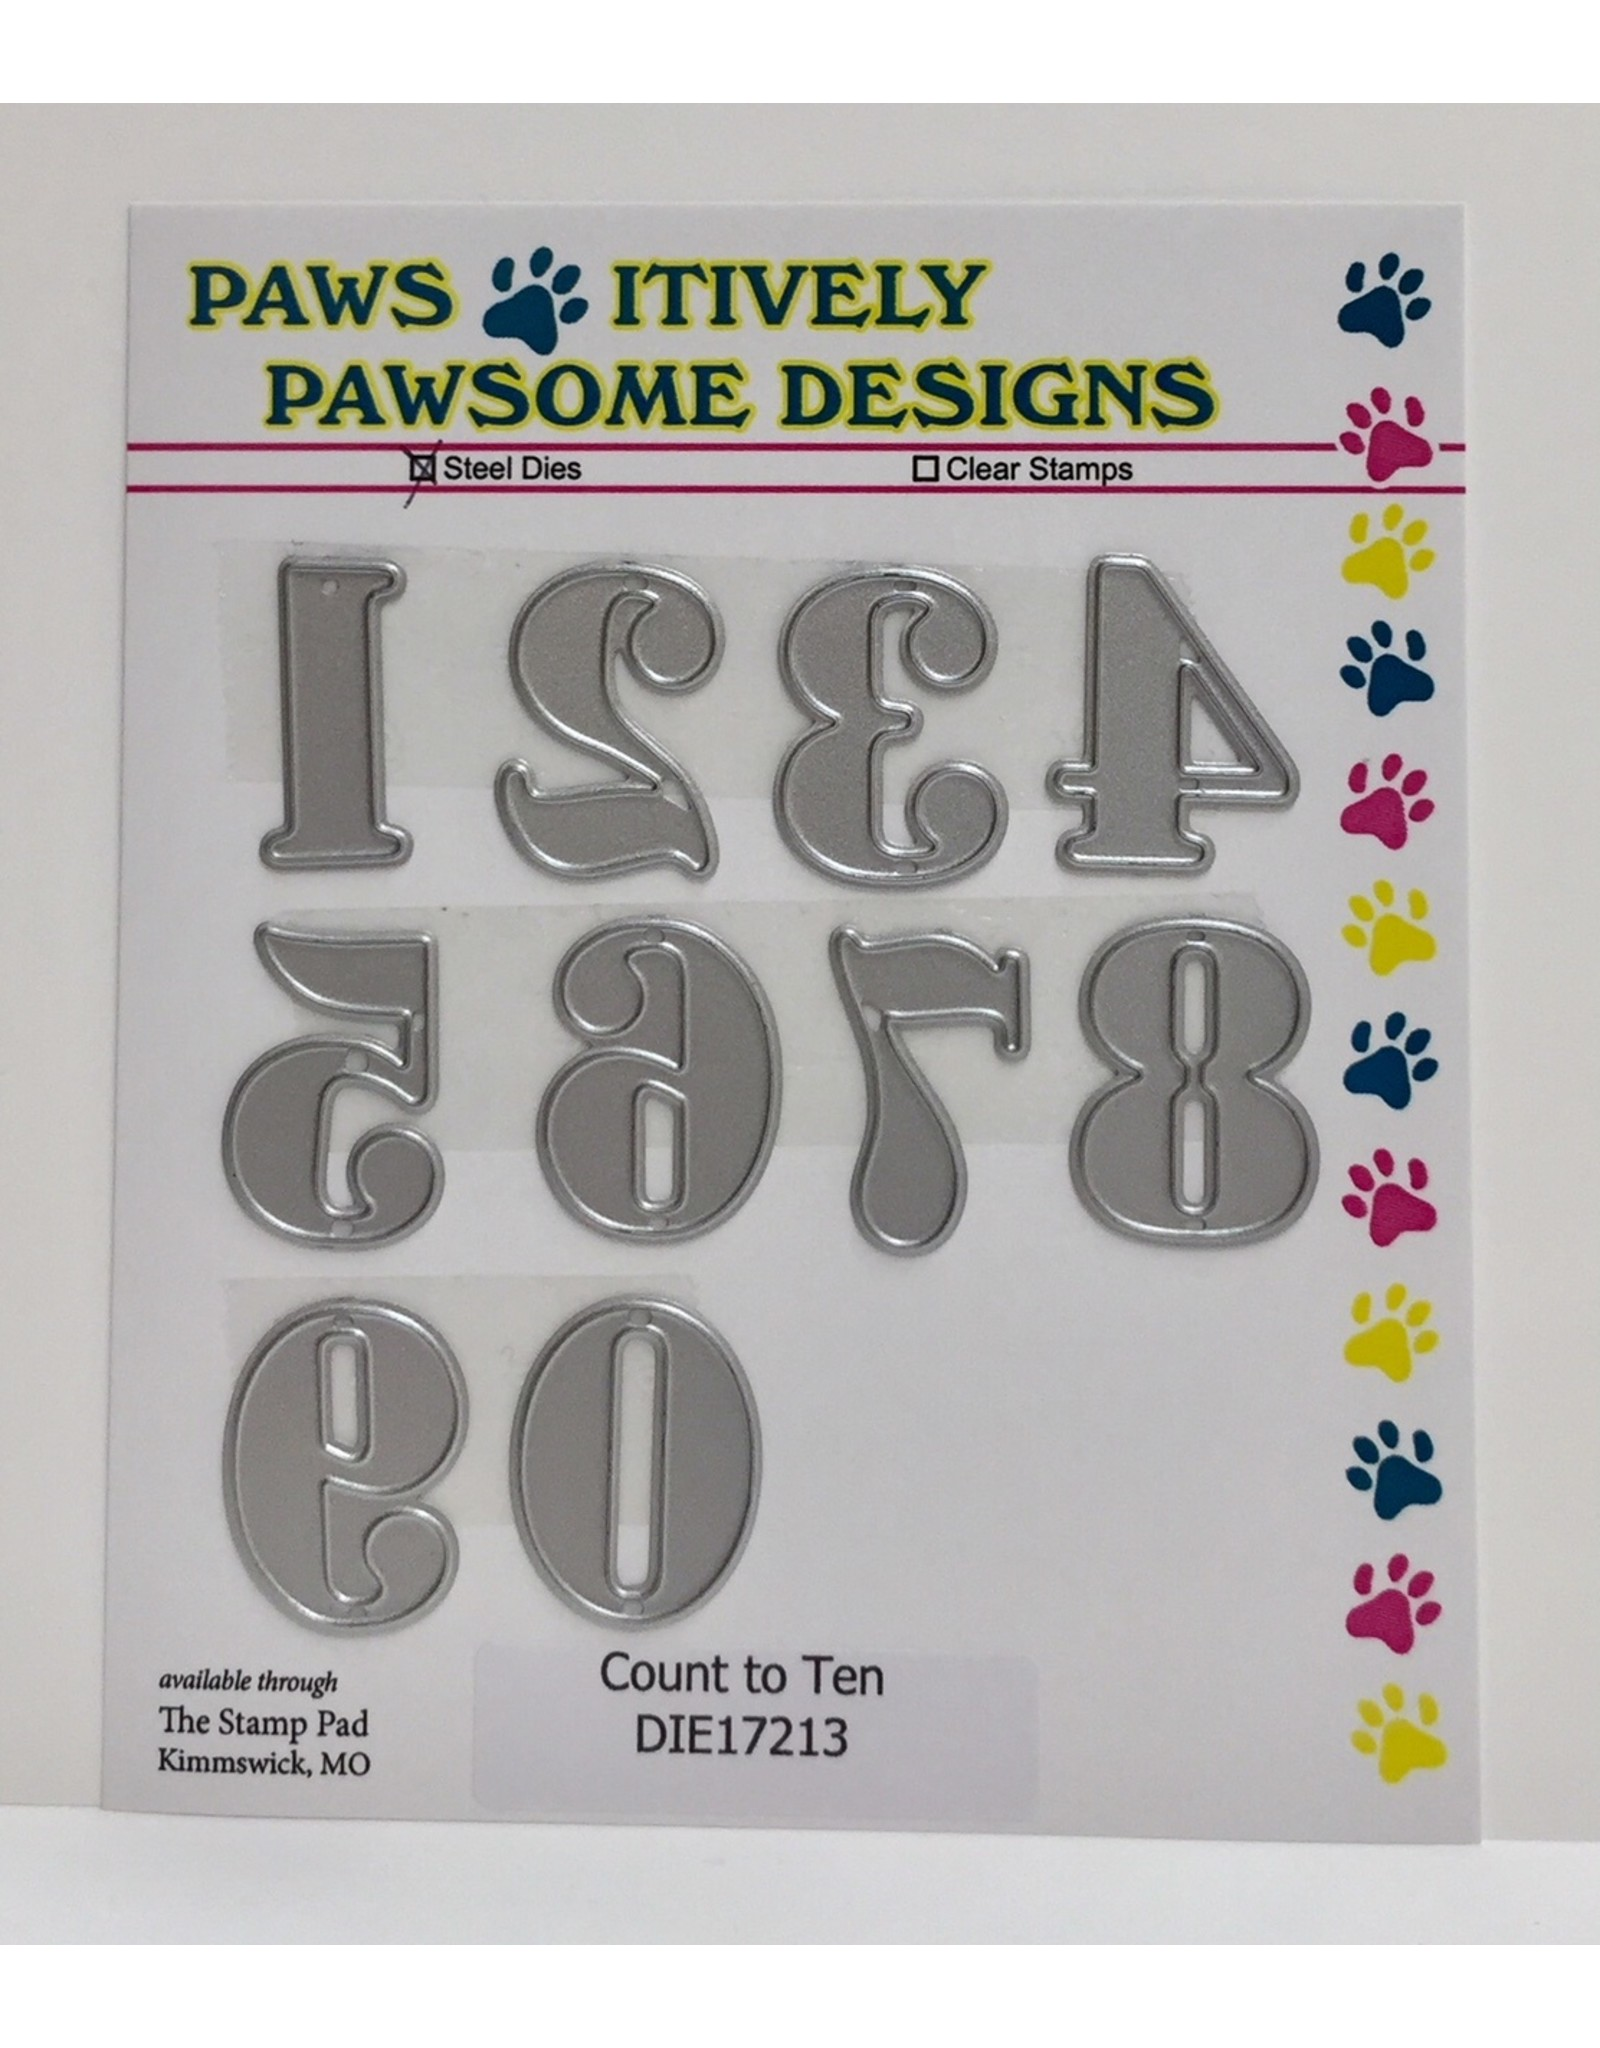 Paws-Itively Pawsome Designs Count to Ten - Die